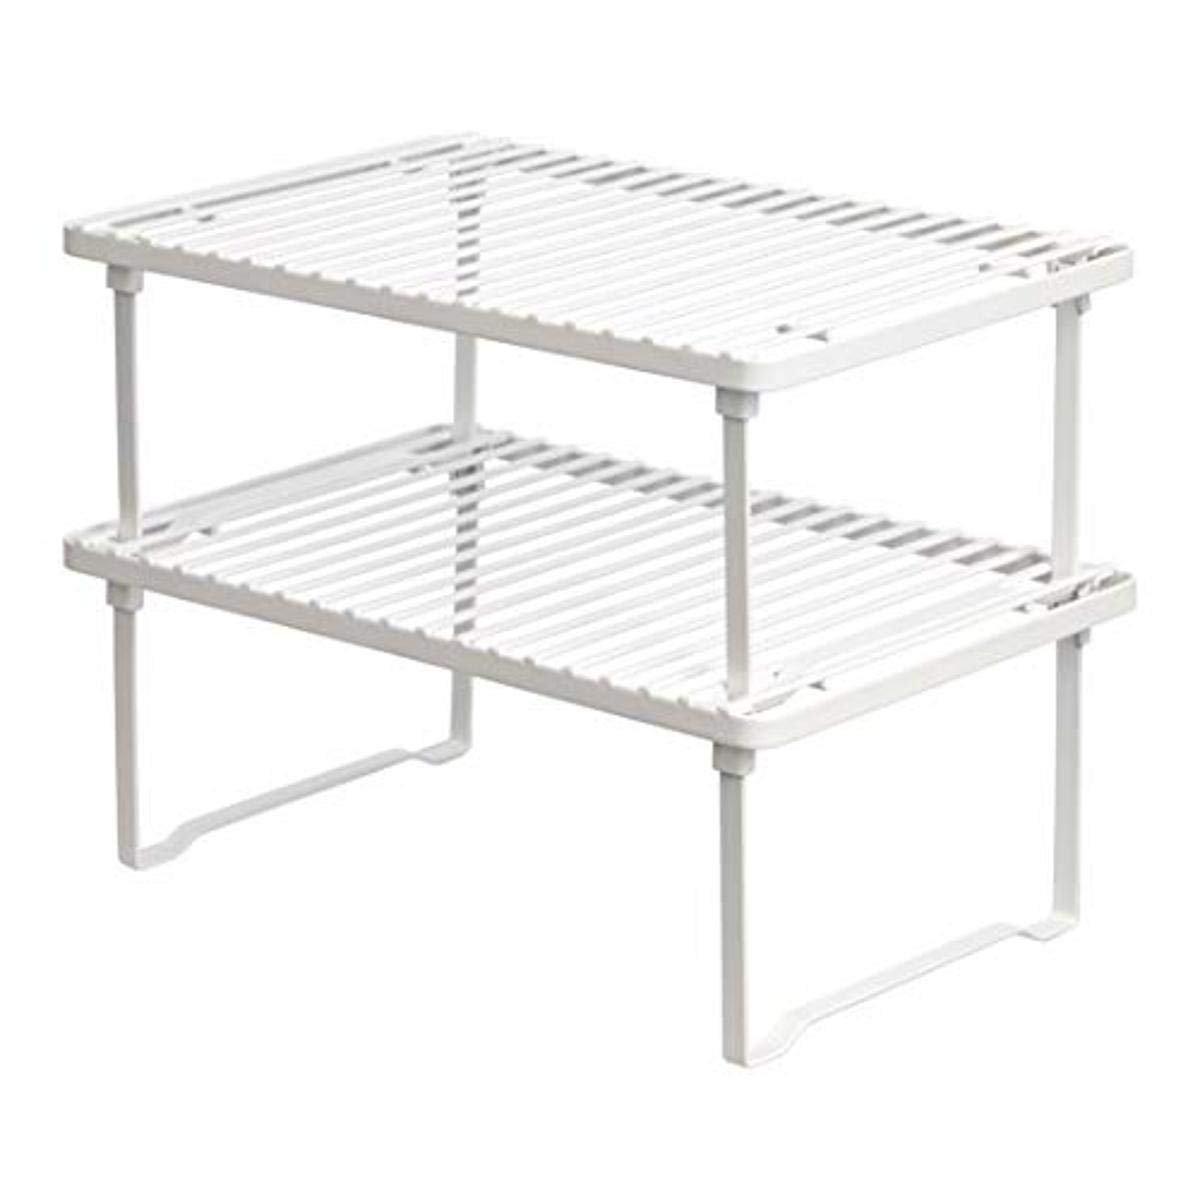 Amazon Basics Metal Stackable Kitchen Storage Shelves - White